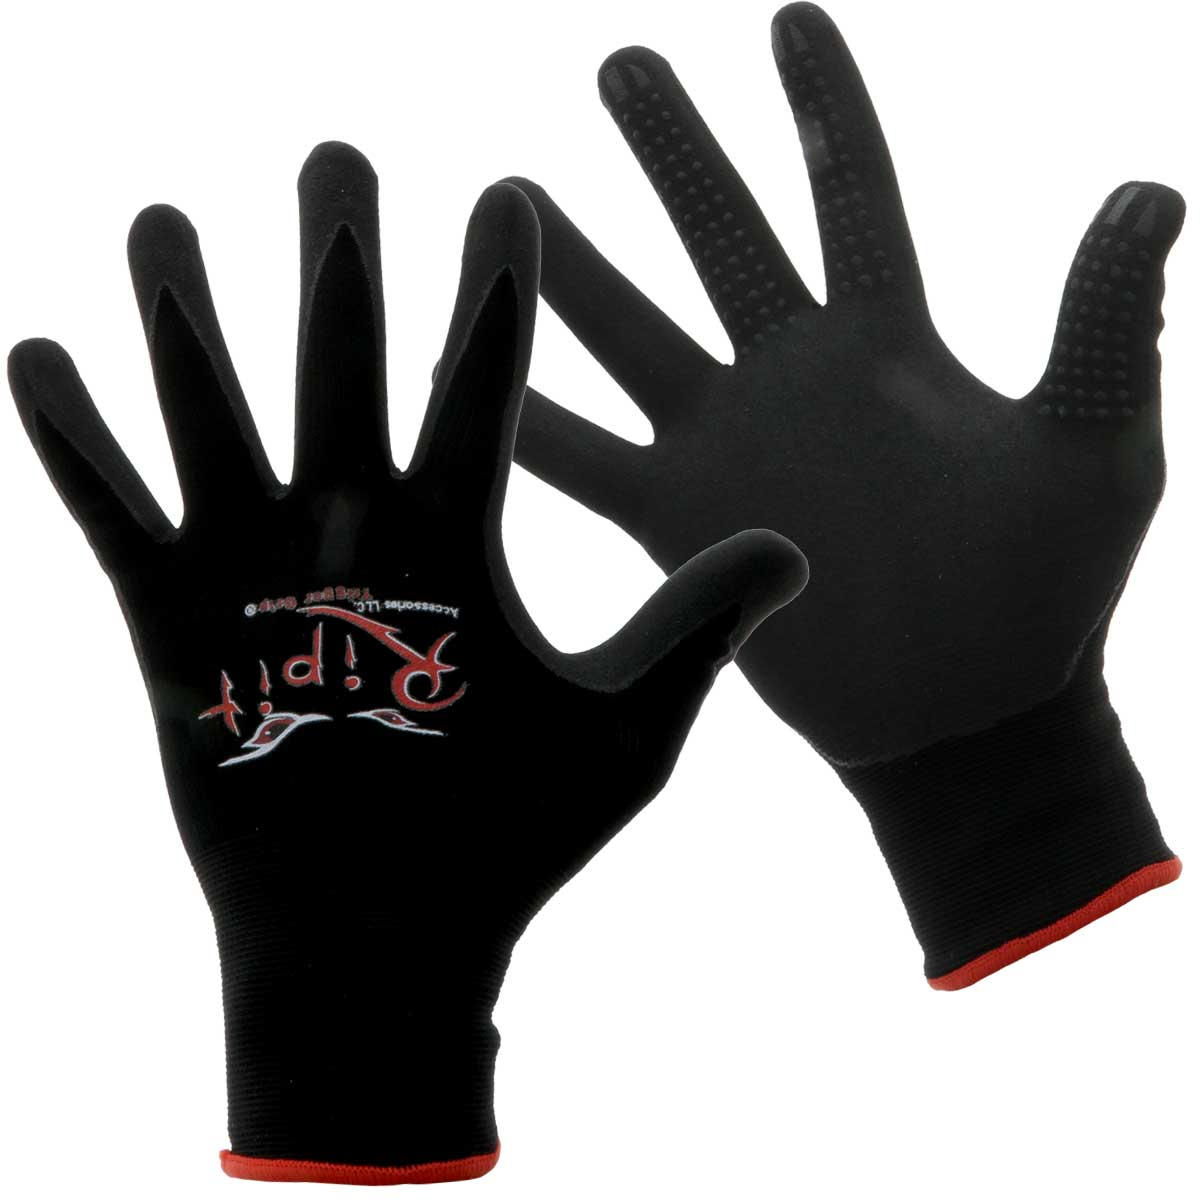 Rip-It Drywall Gloves With Trigger Grip - Black